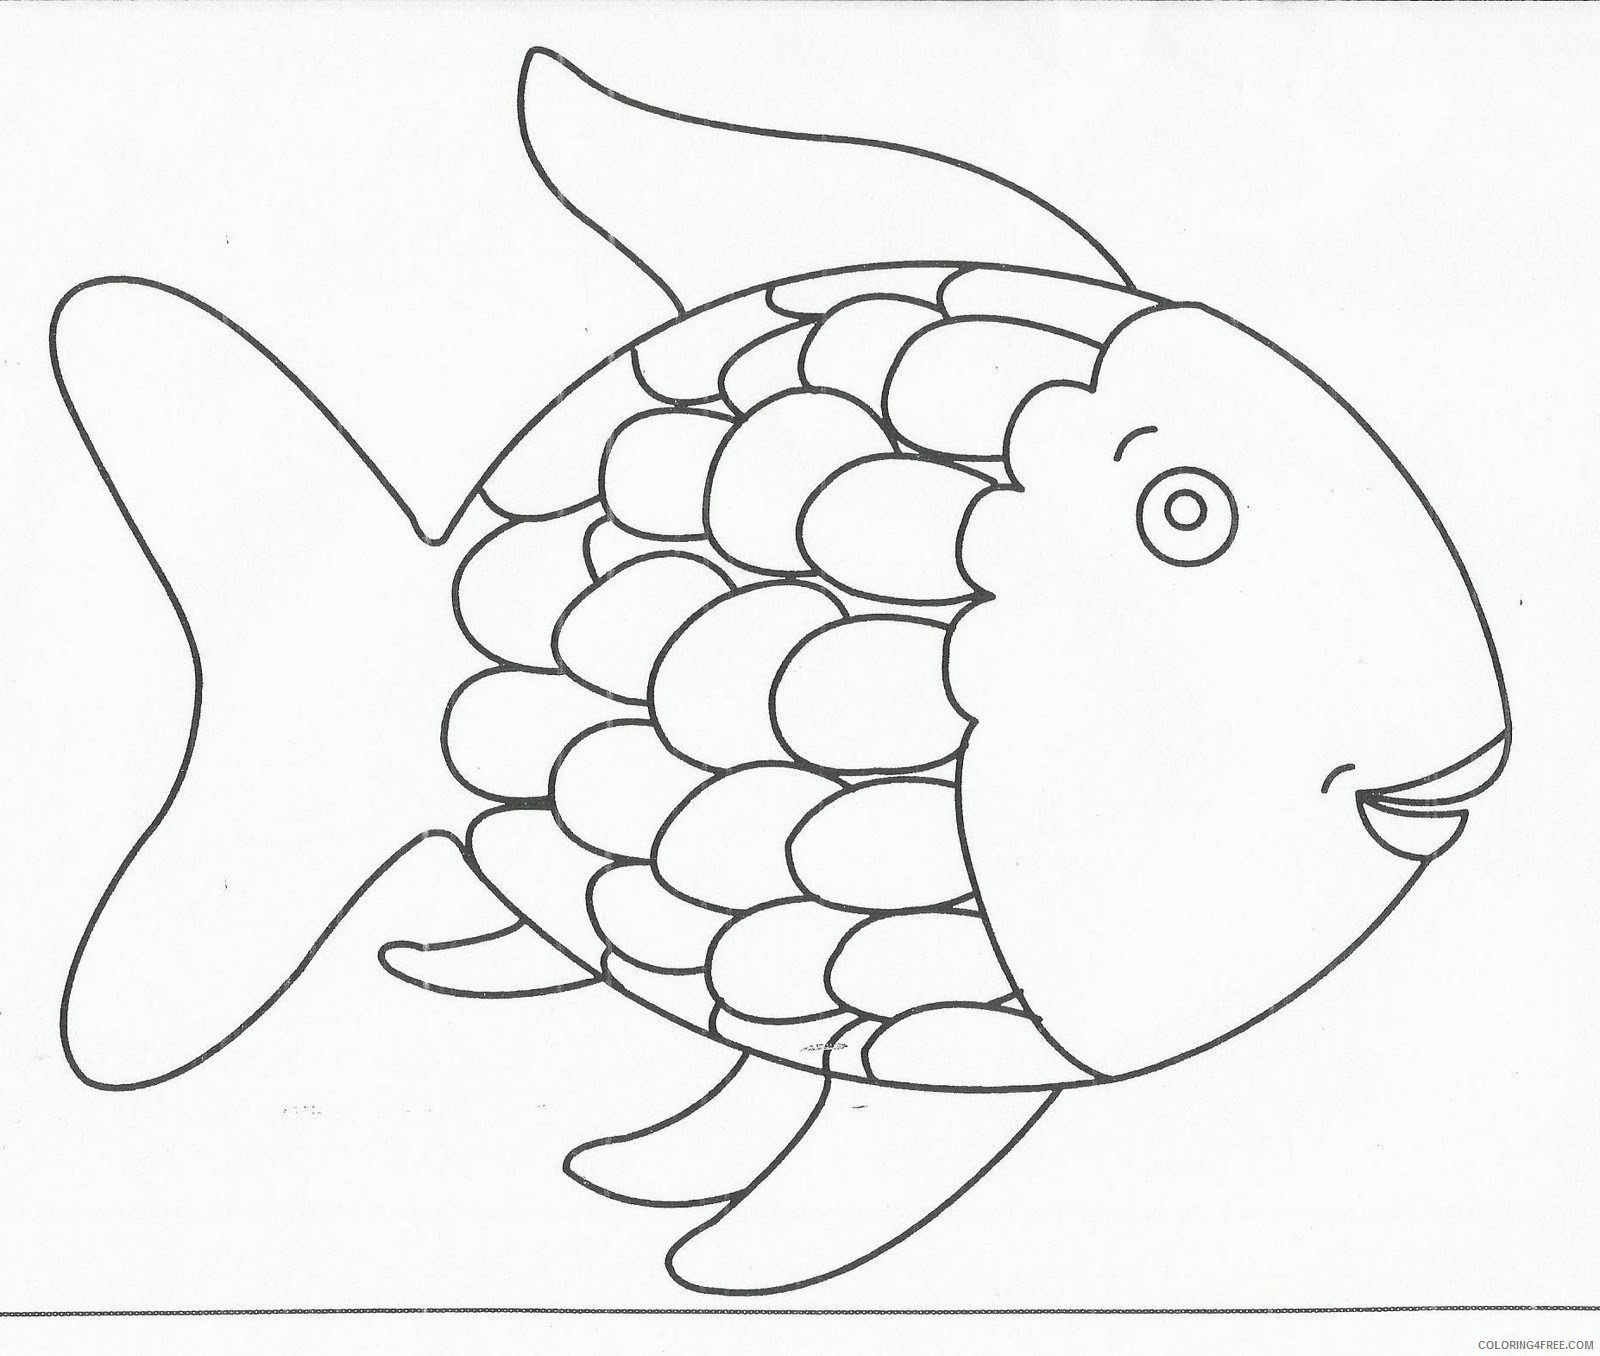 Fish Coloring Pages squish preschool ideas fish BURNeF Printable Coloring4free